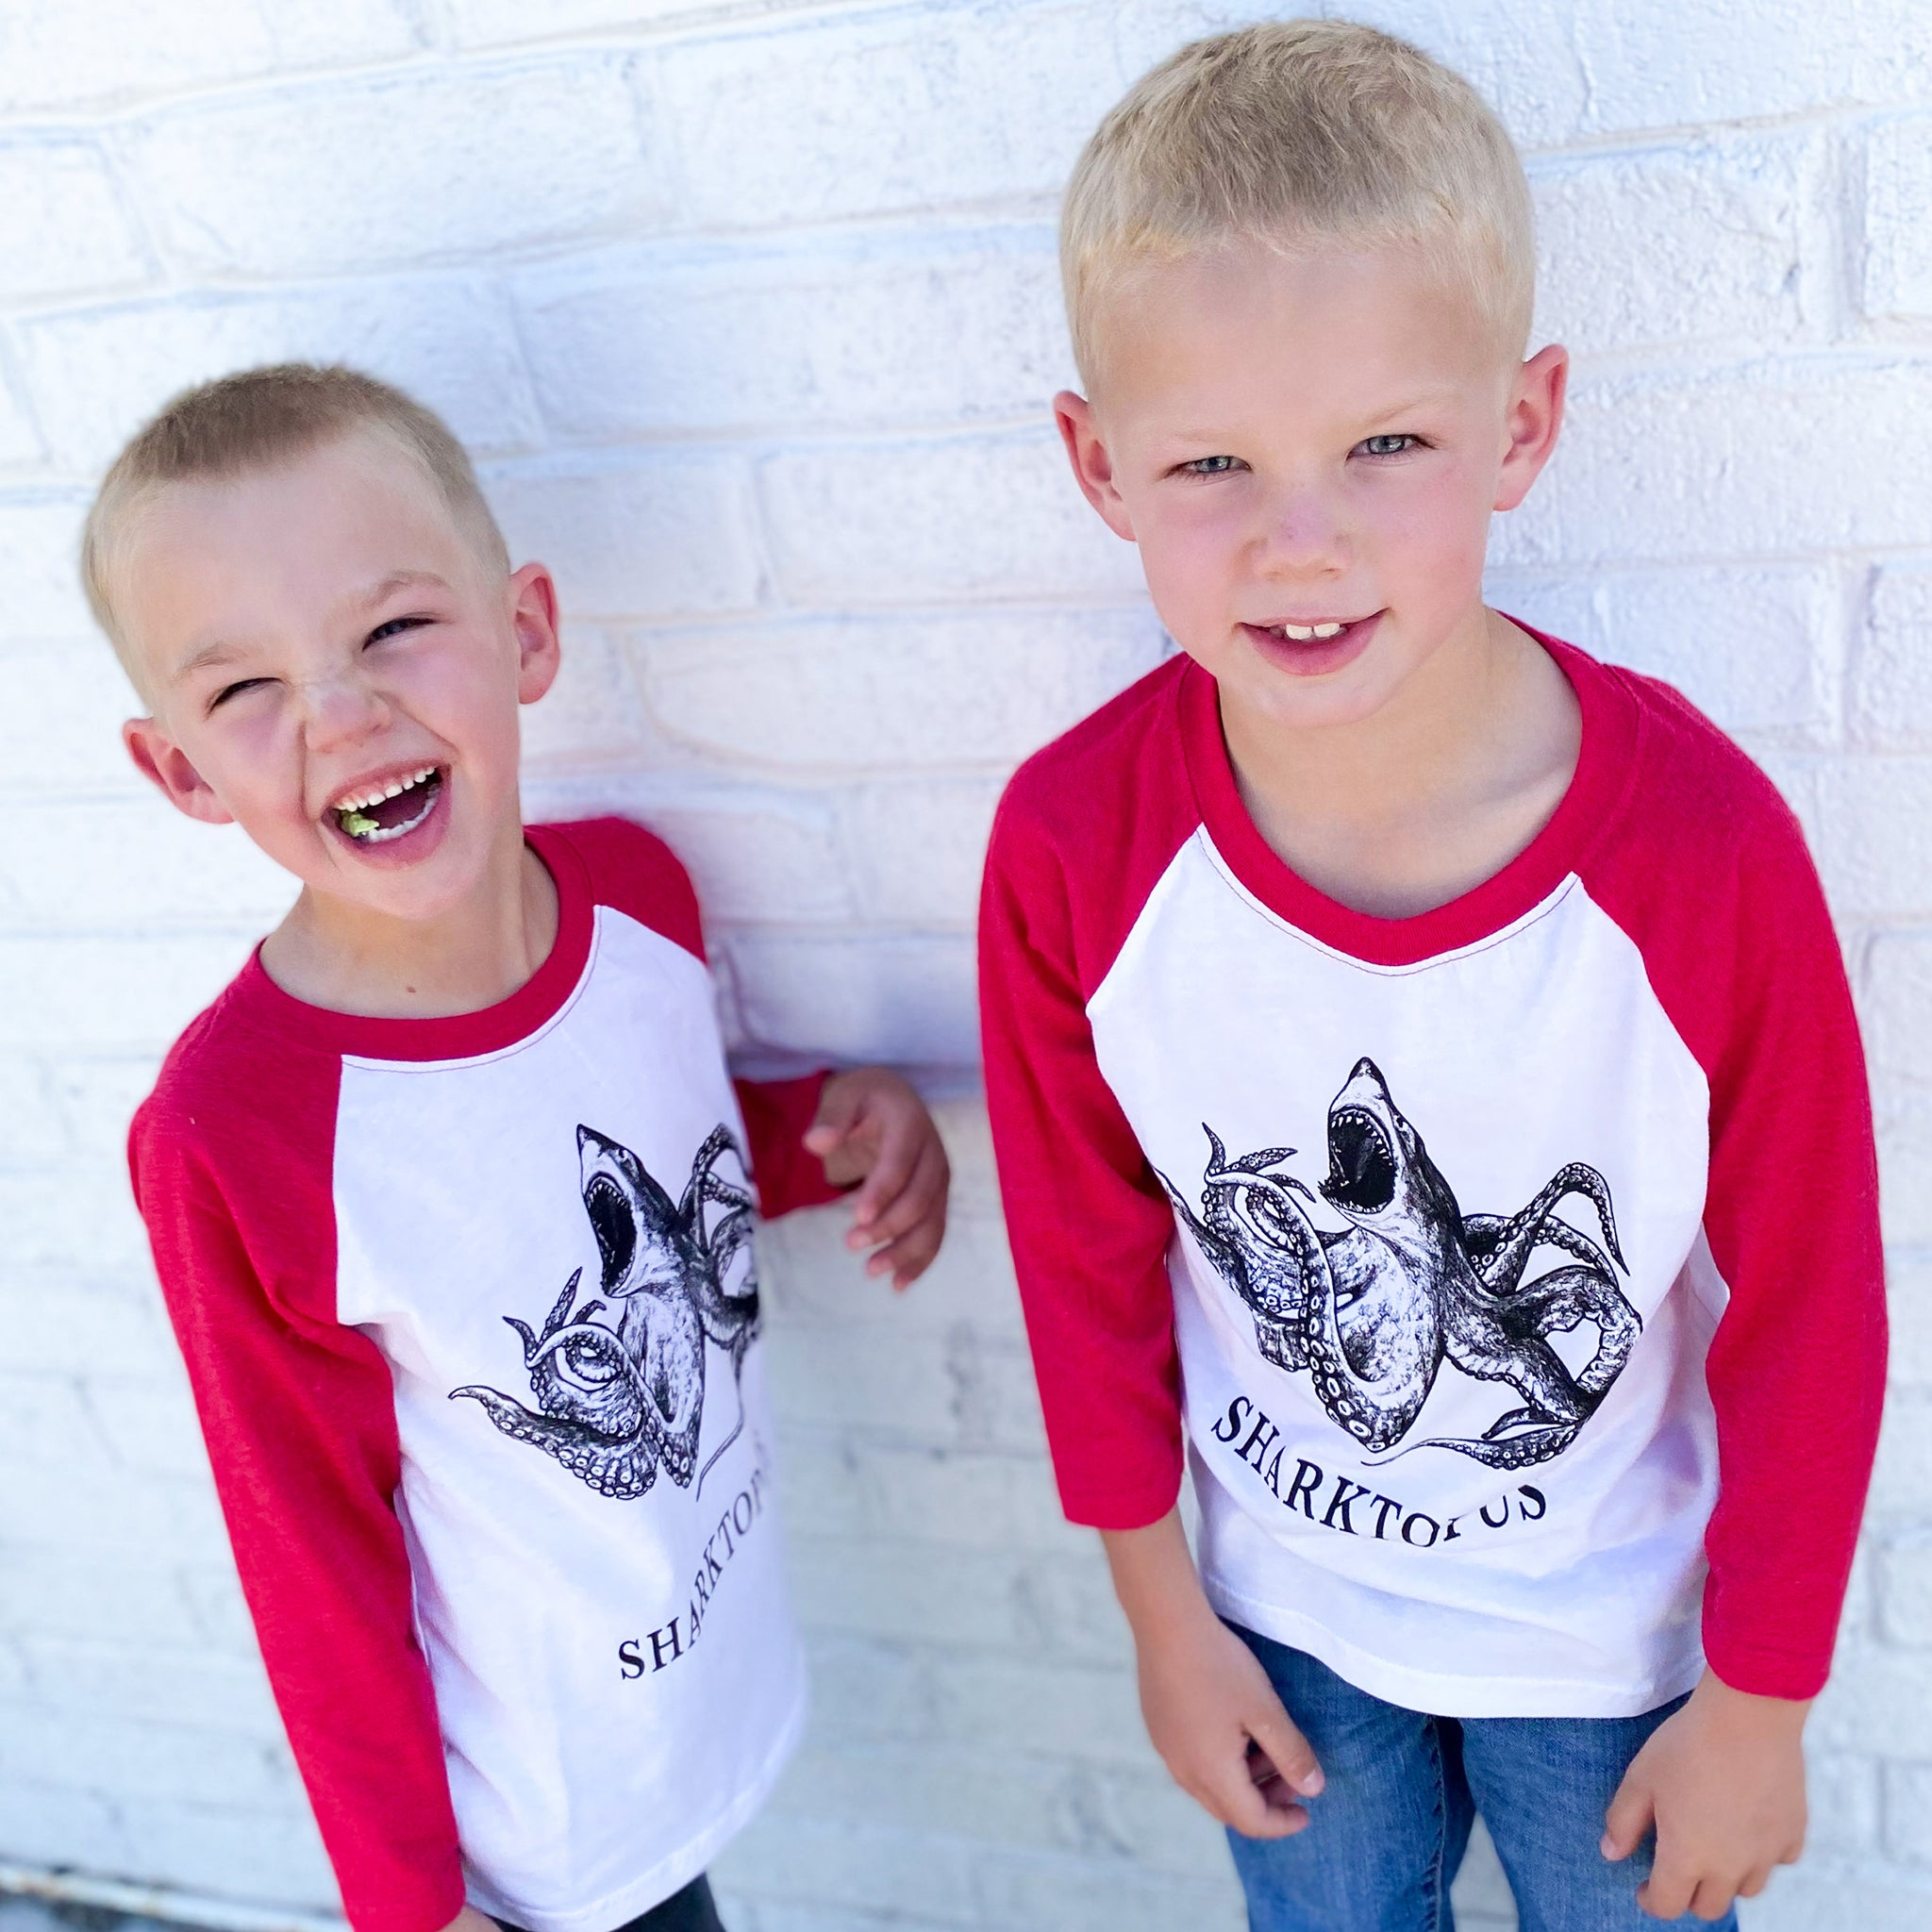 Sharktopus Kids T-Shirt | Red & White